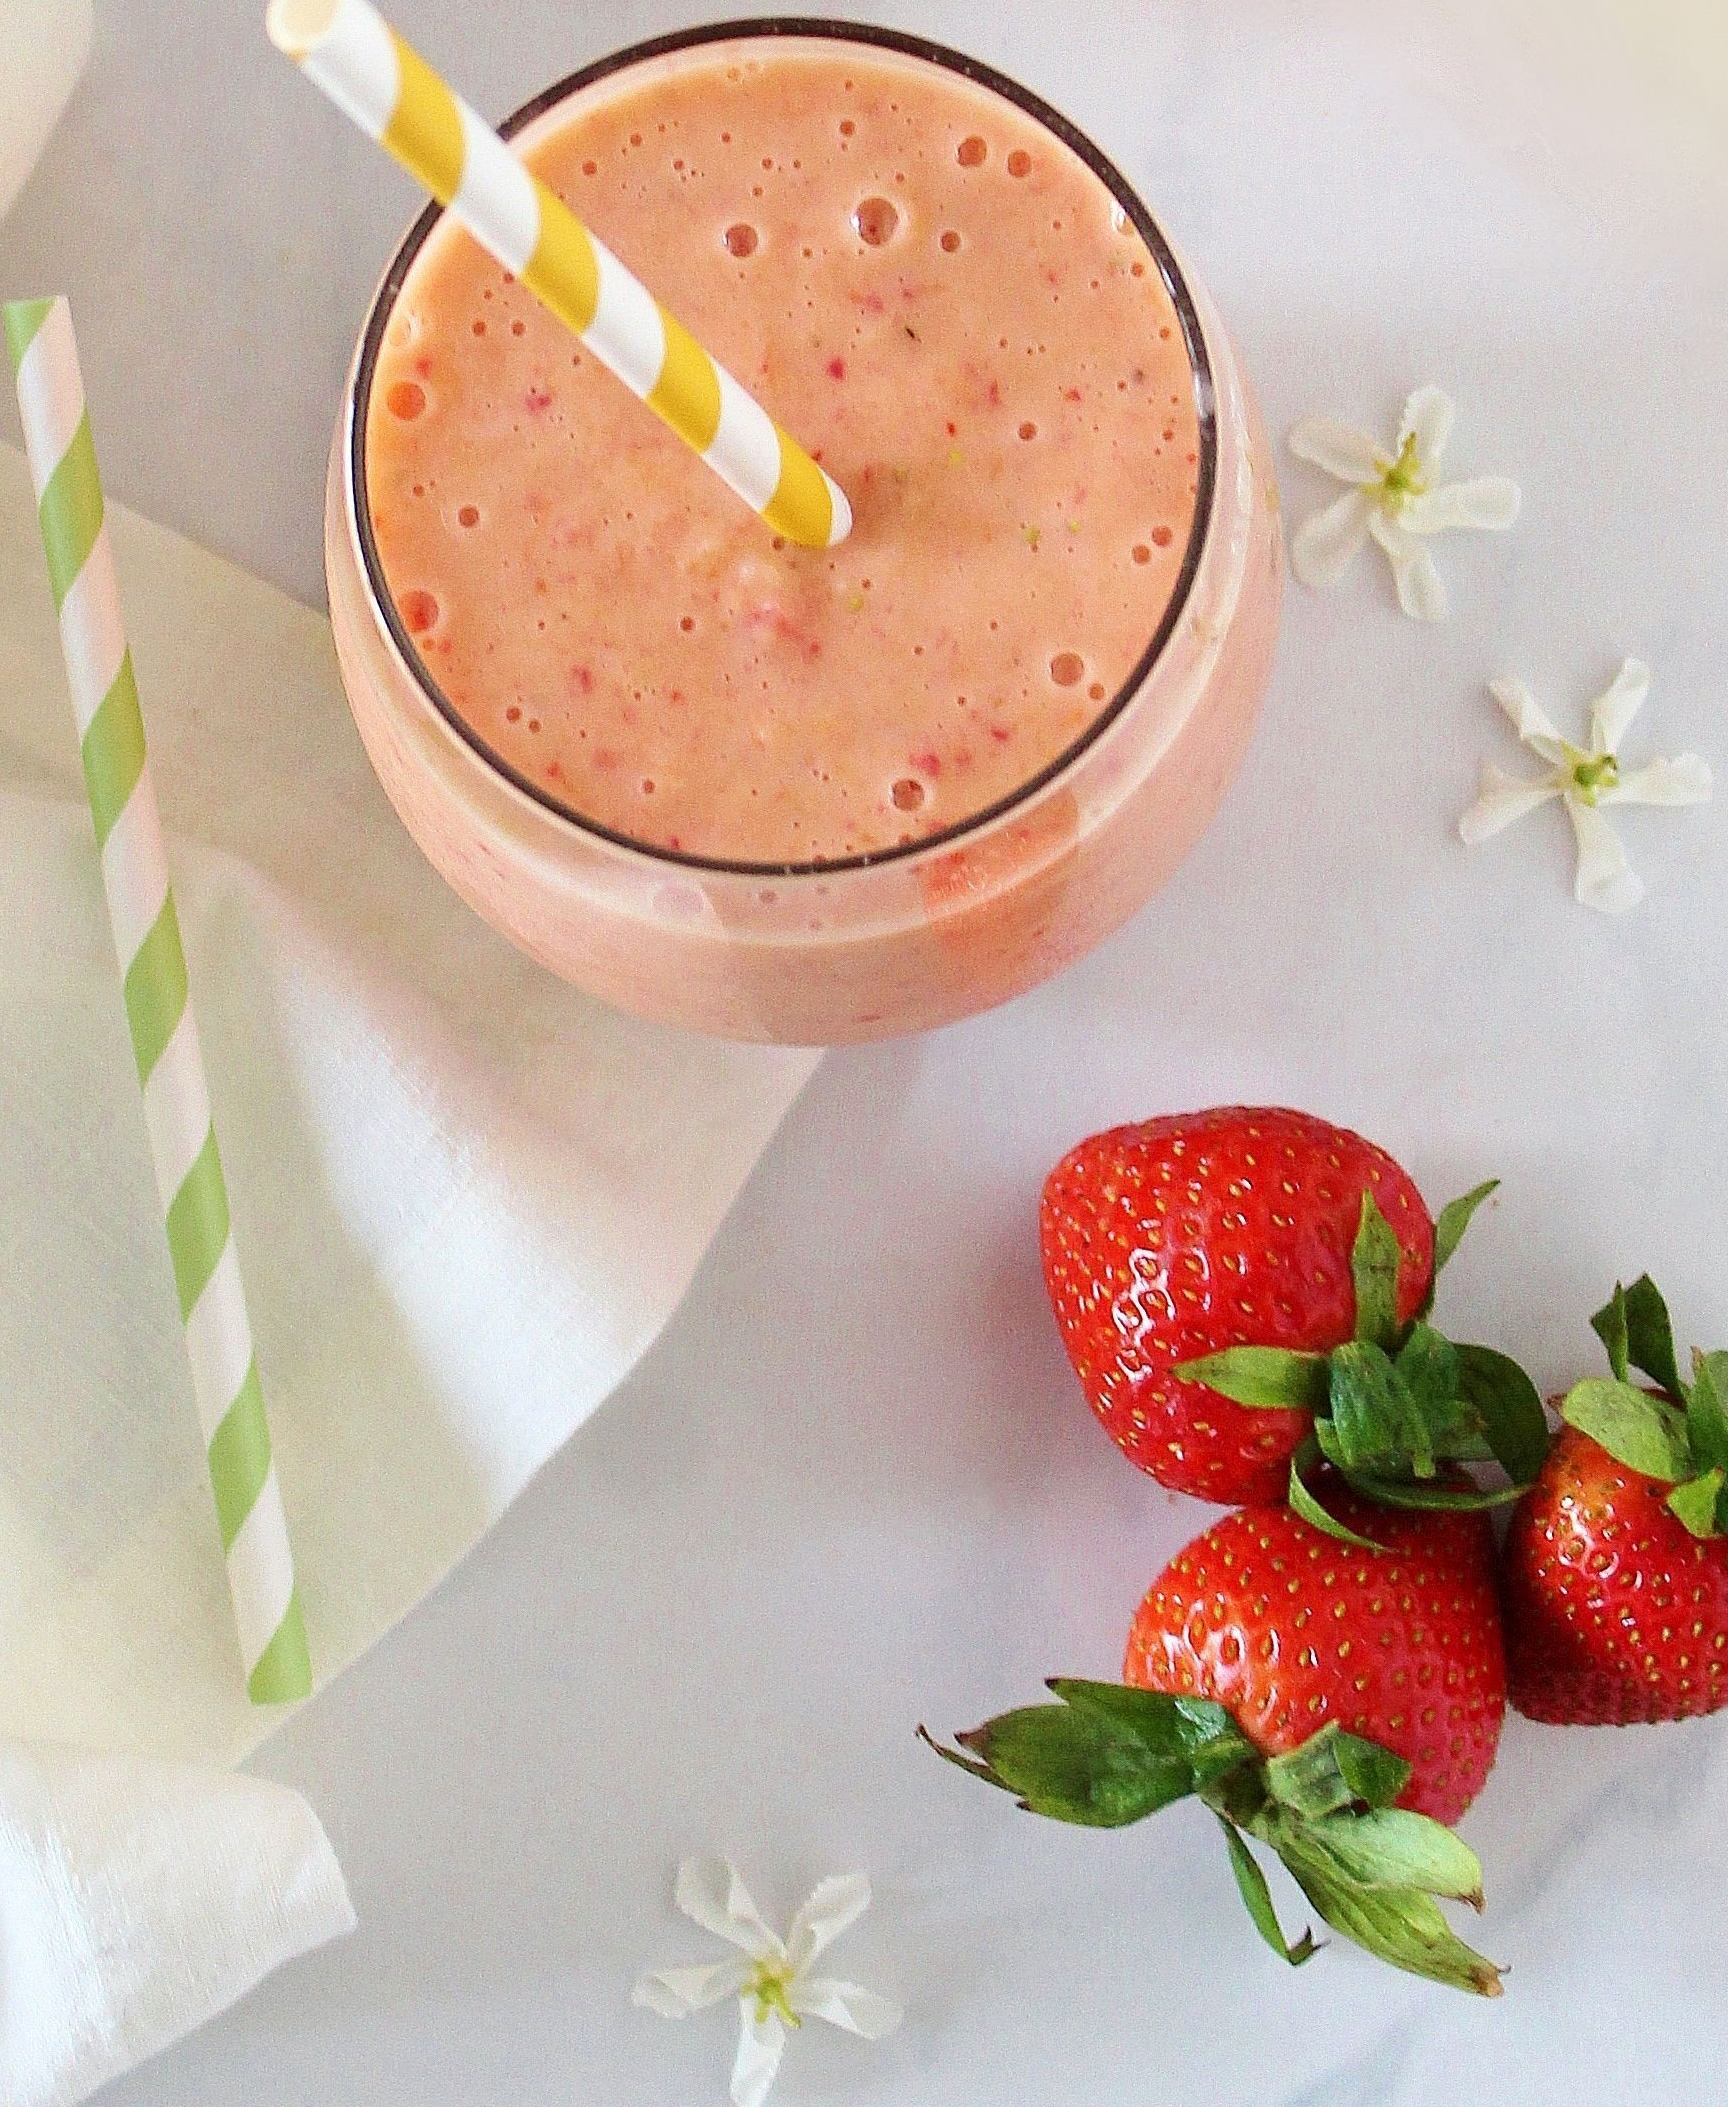 Afternoon Energizing Smoothie with Hemp & Cara Cara